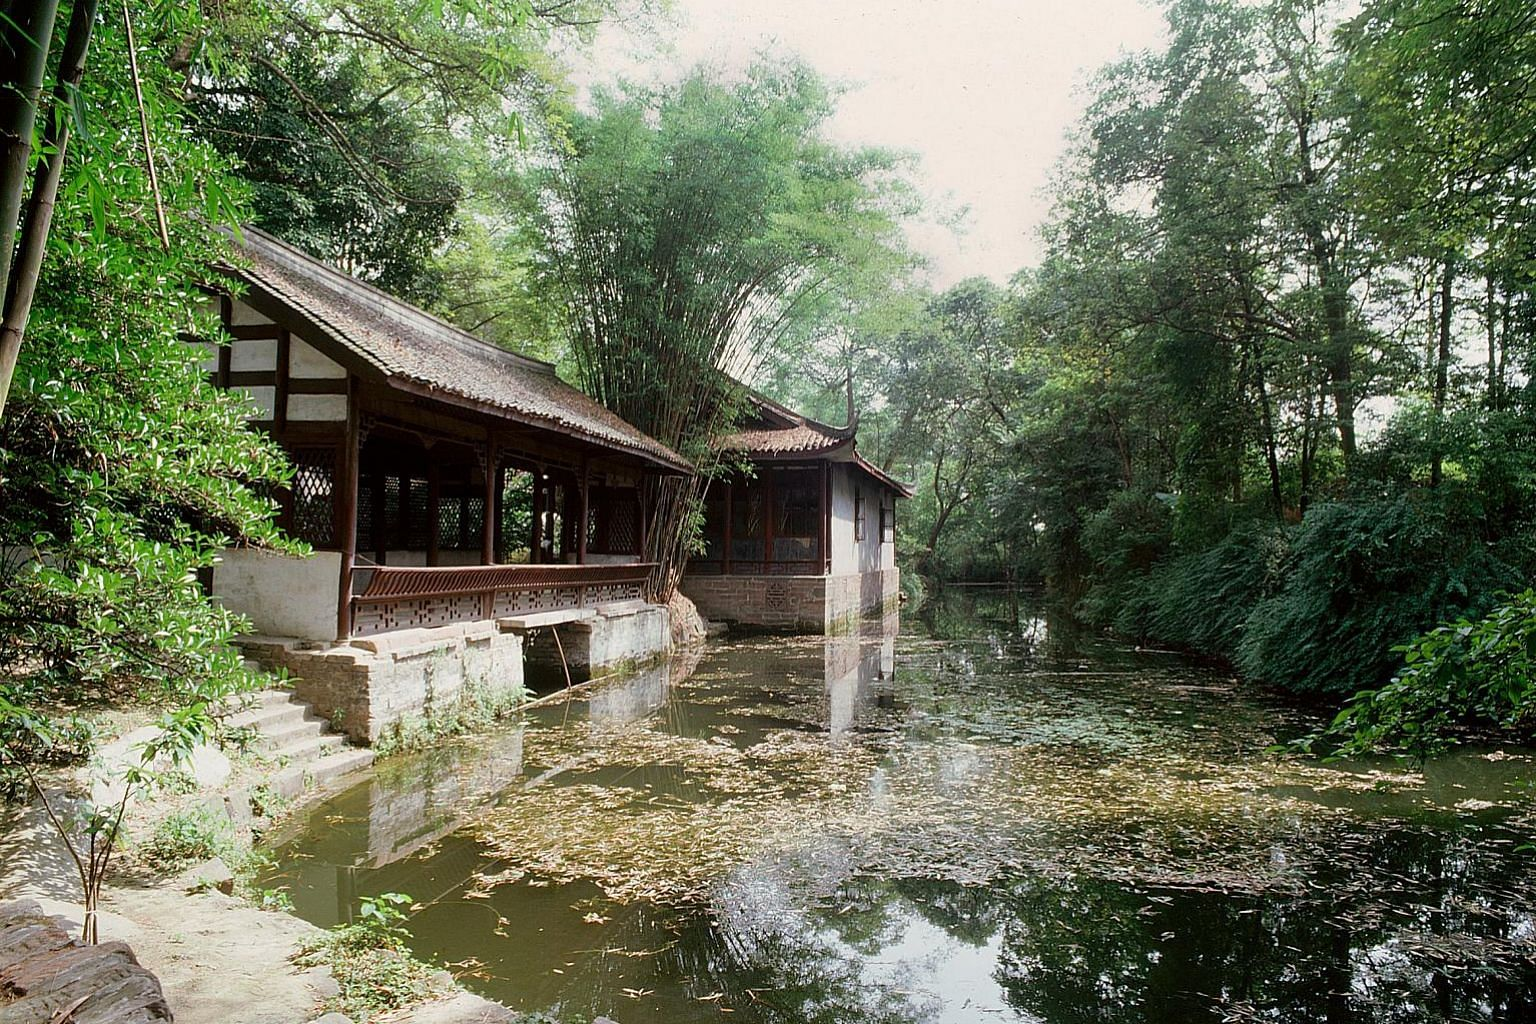 Du Fu Cottage, located in Qiang Village, Fuzhou, which the writer visited. The cottage of Tang dynasty poet Du Fu (above), in Chengdu, Sichuan province.